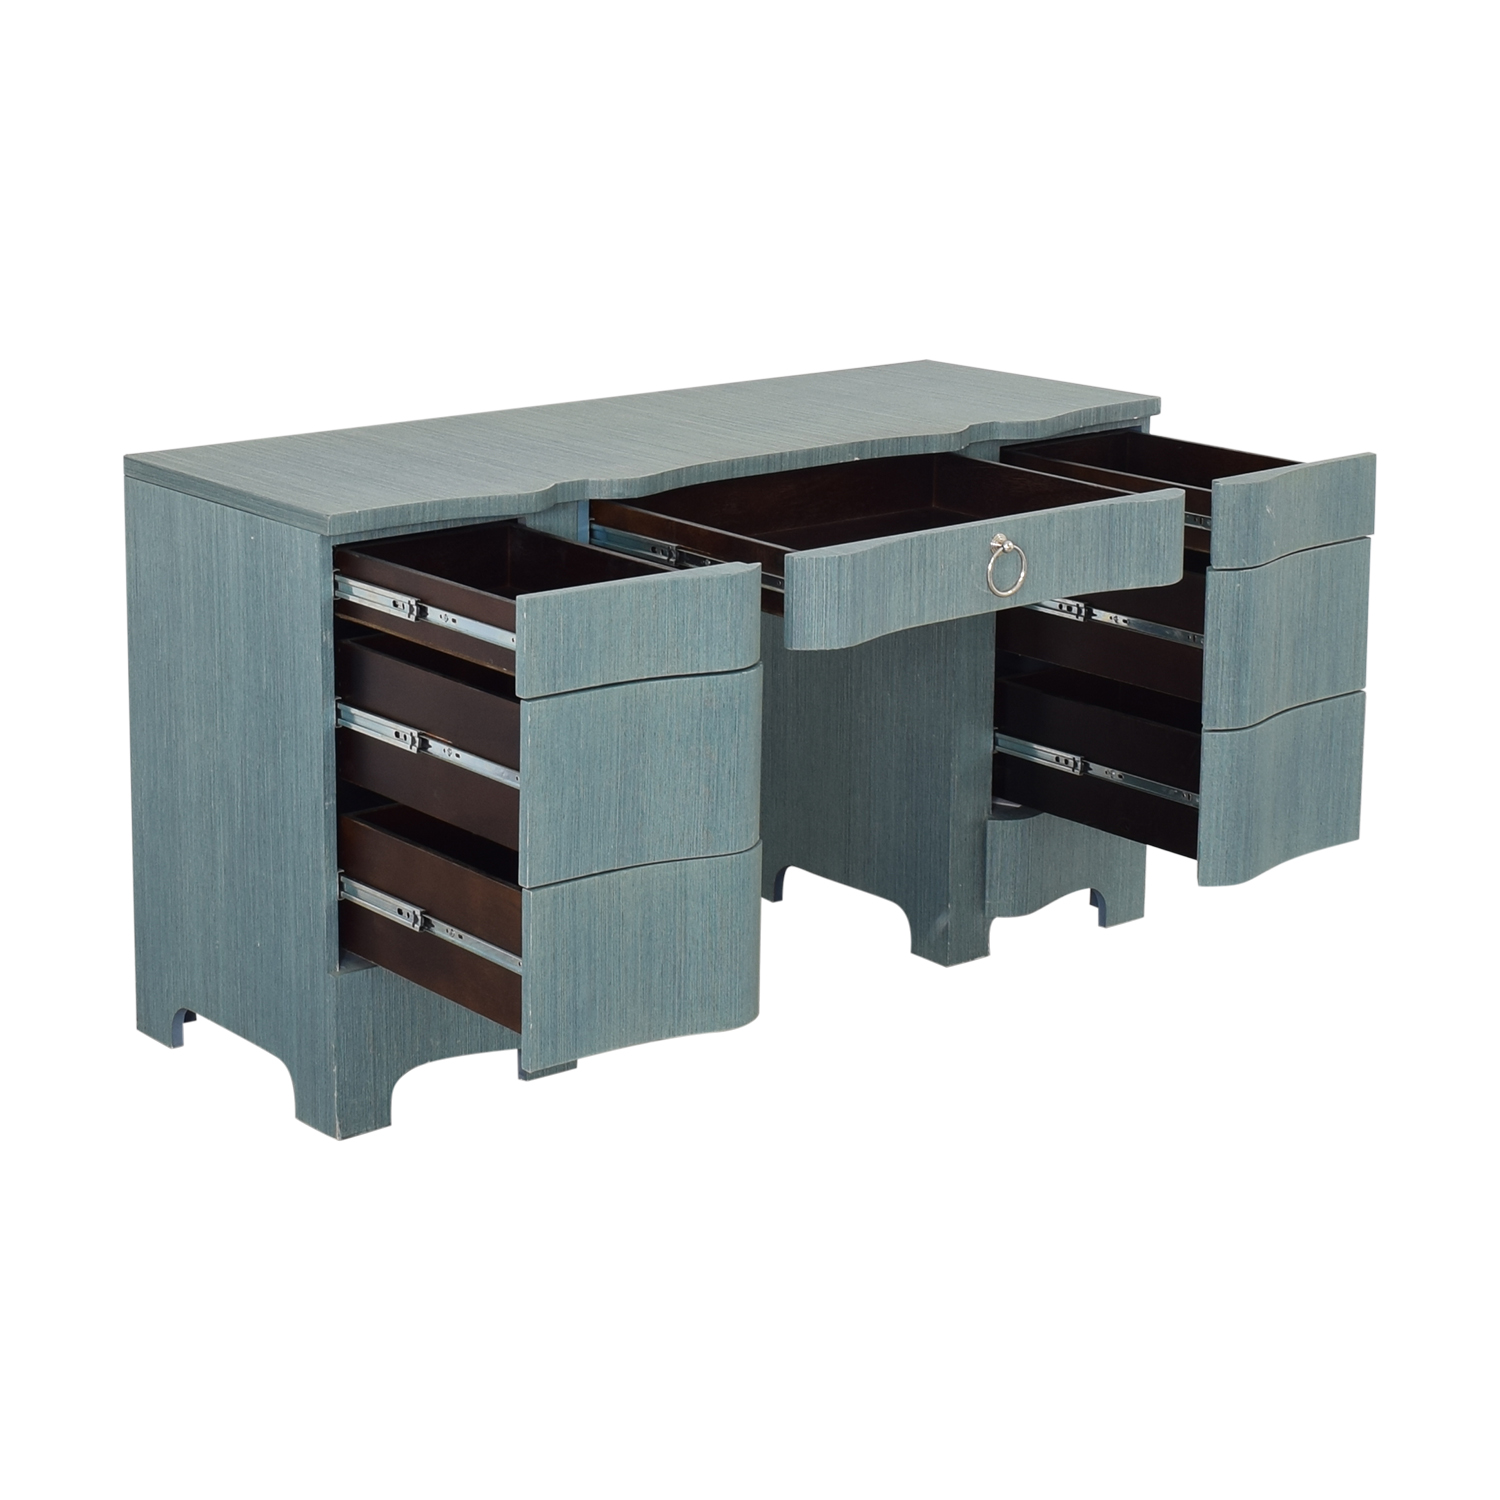 buy Office Desk with Seven Drawers